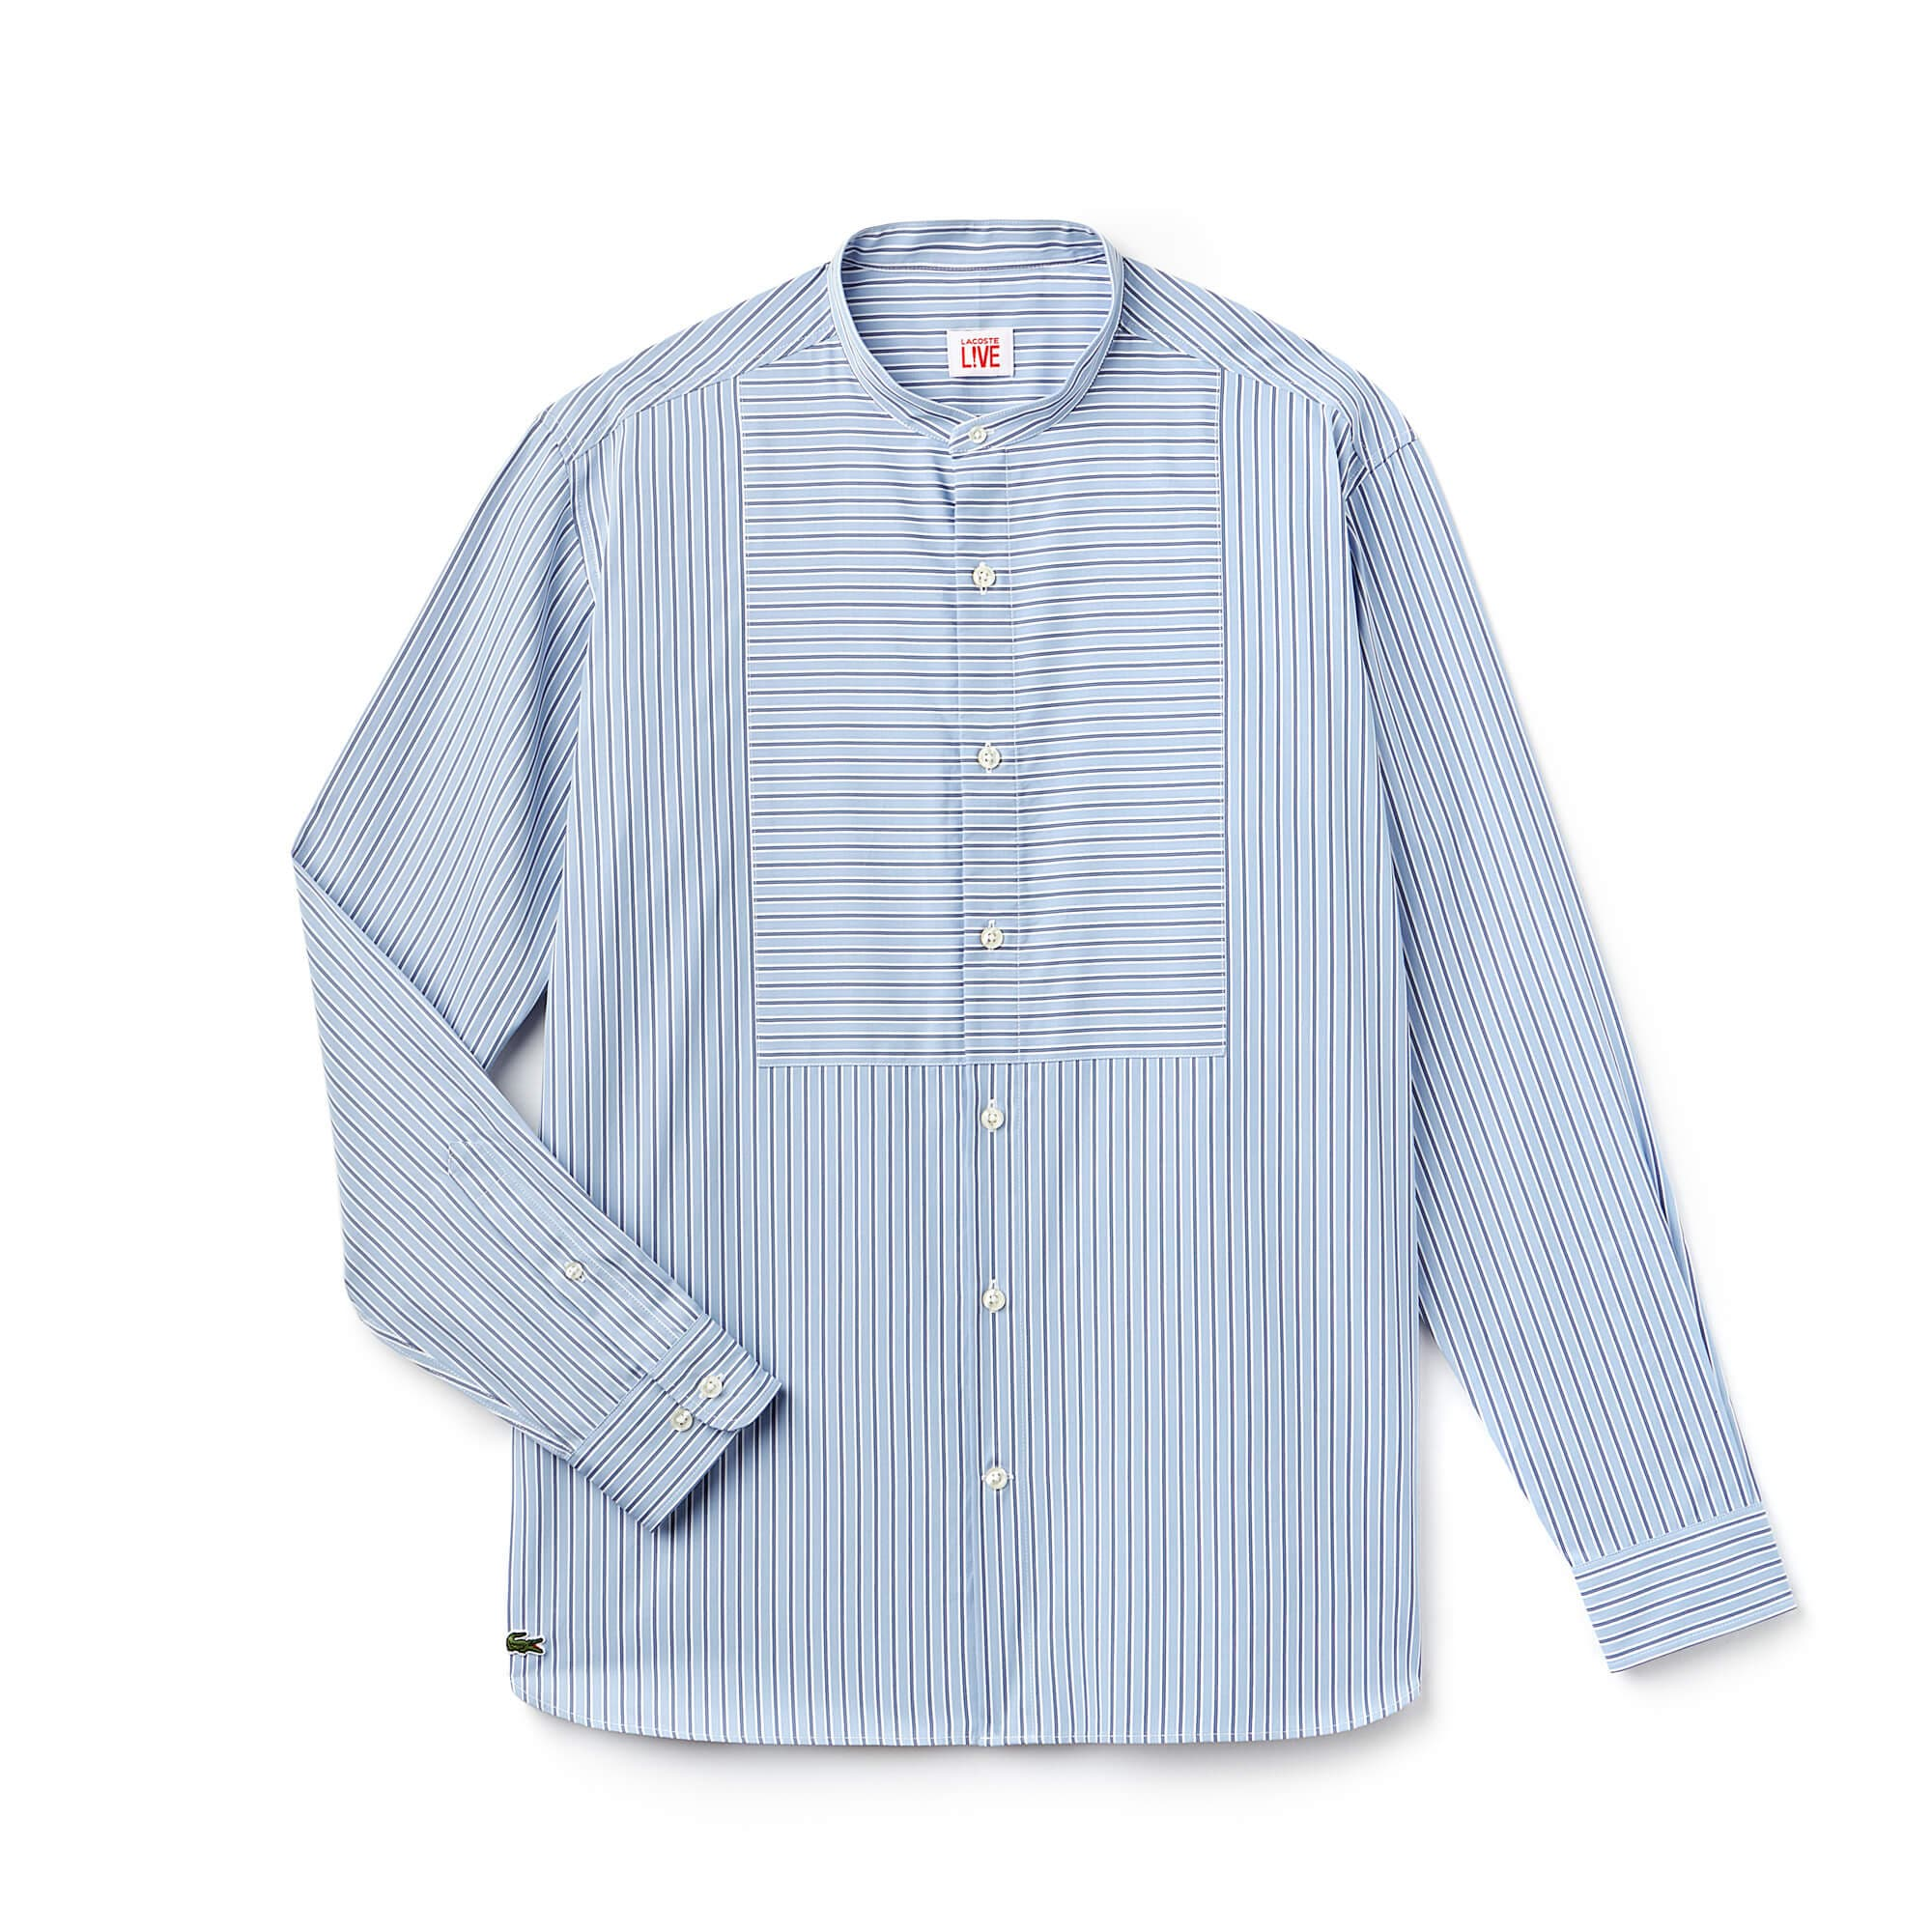 Men's LIVE Boxy Fit Striped Poplin Shirt